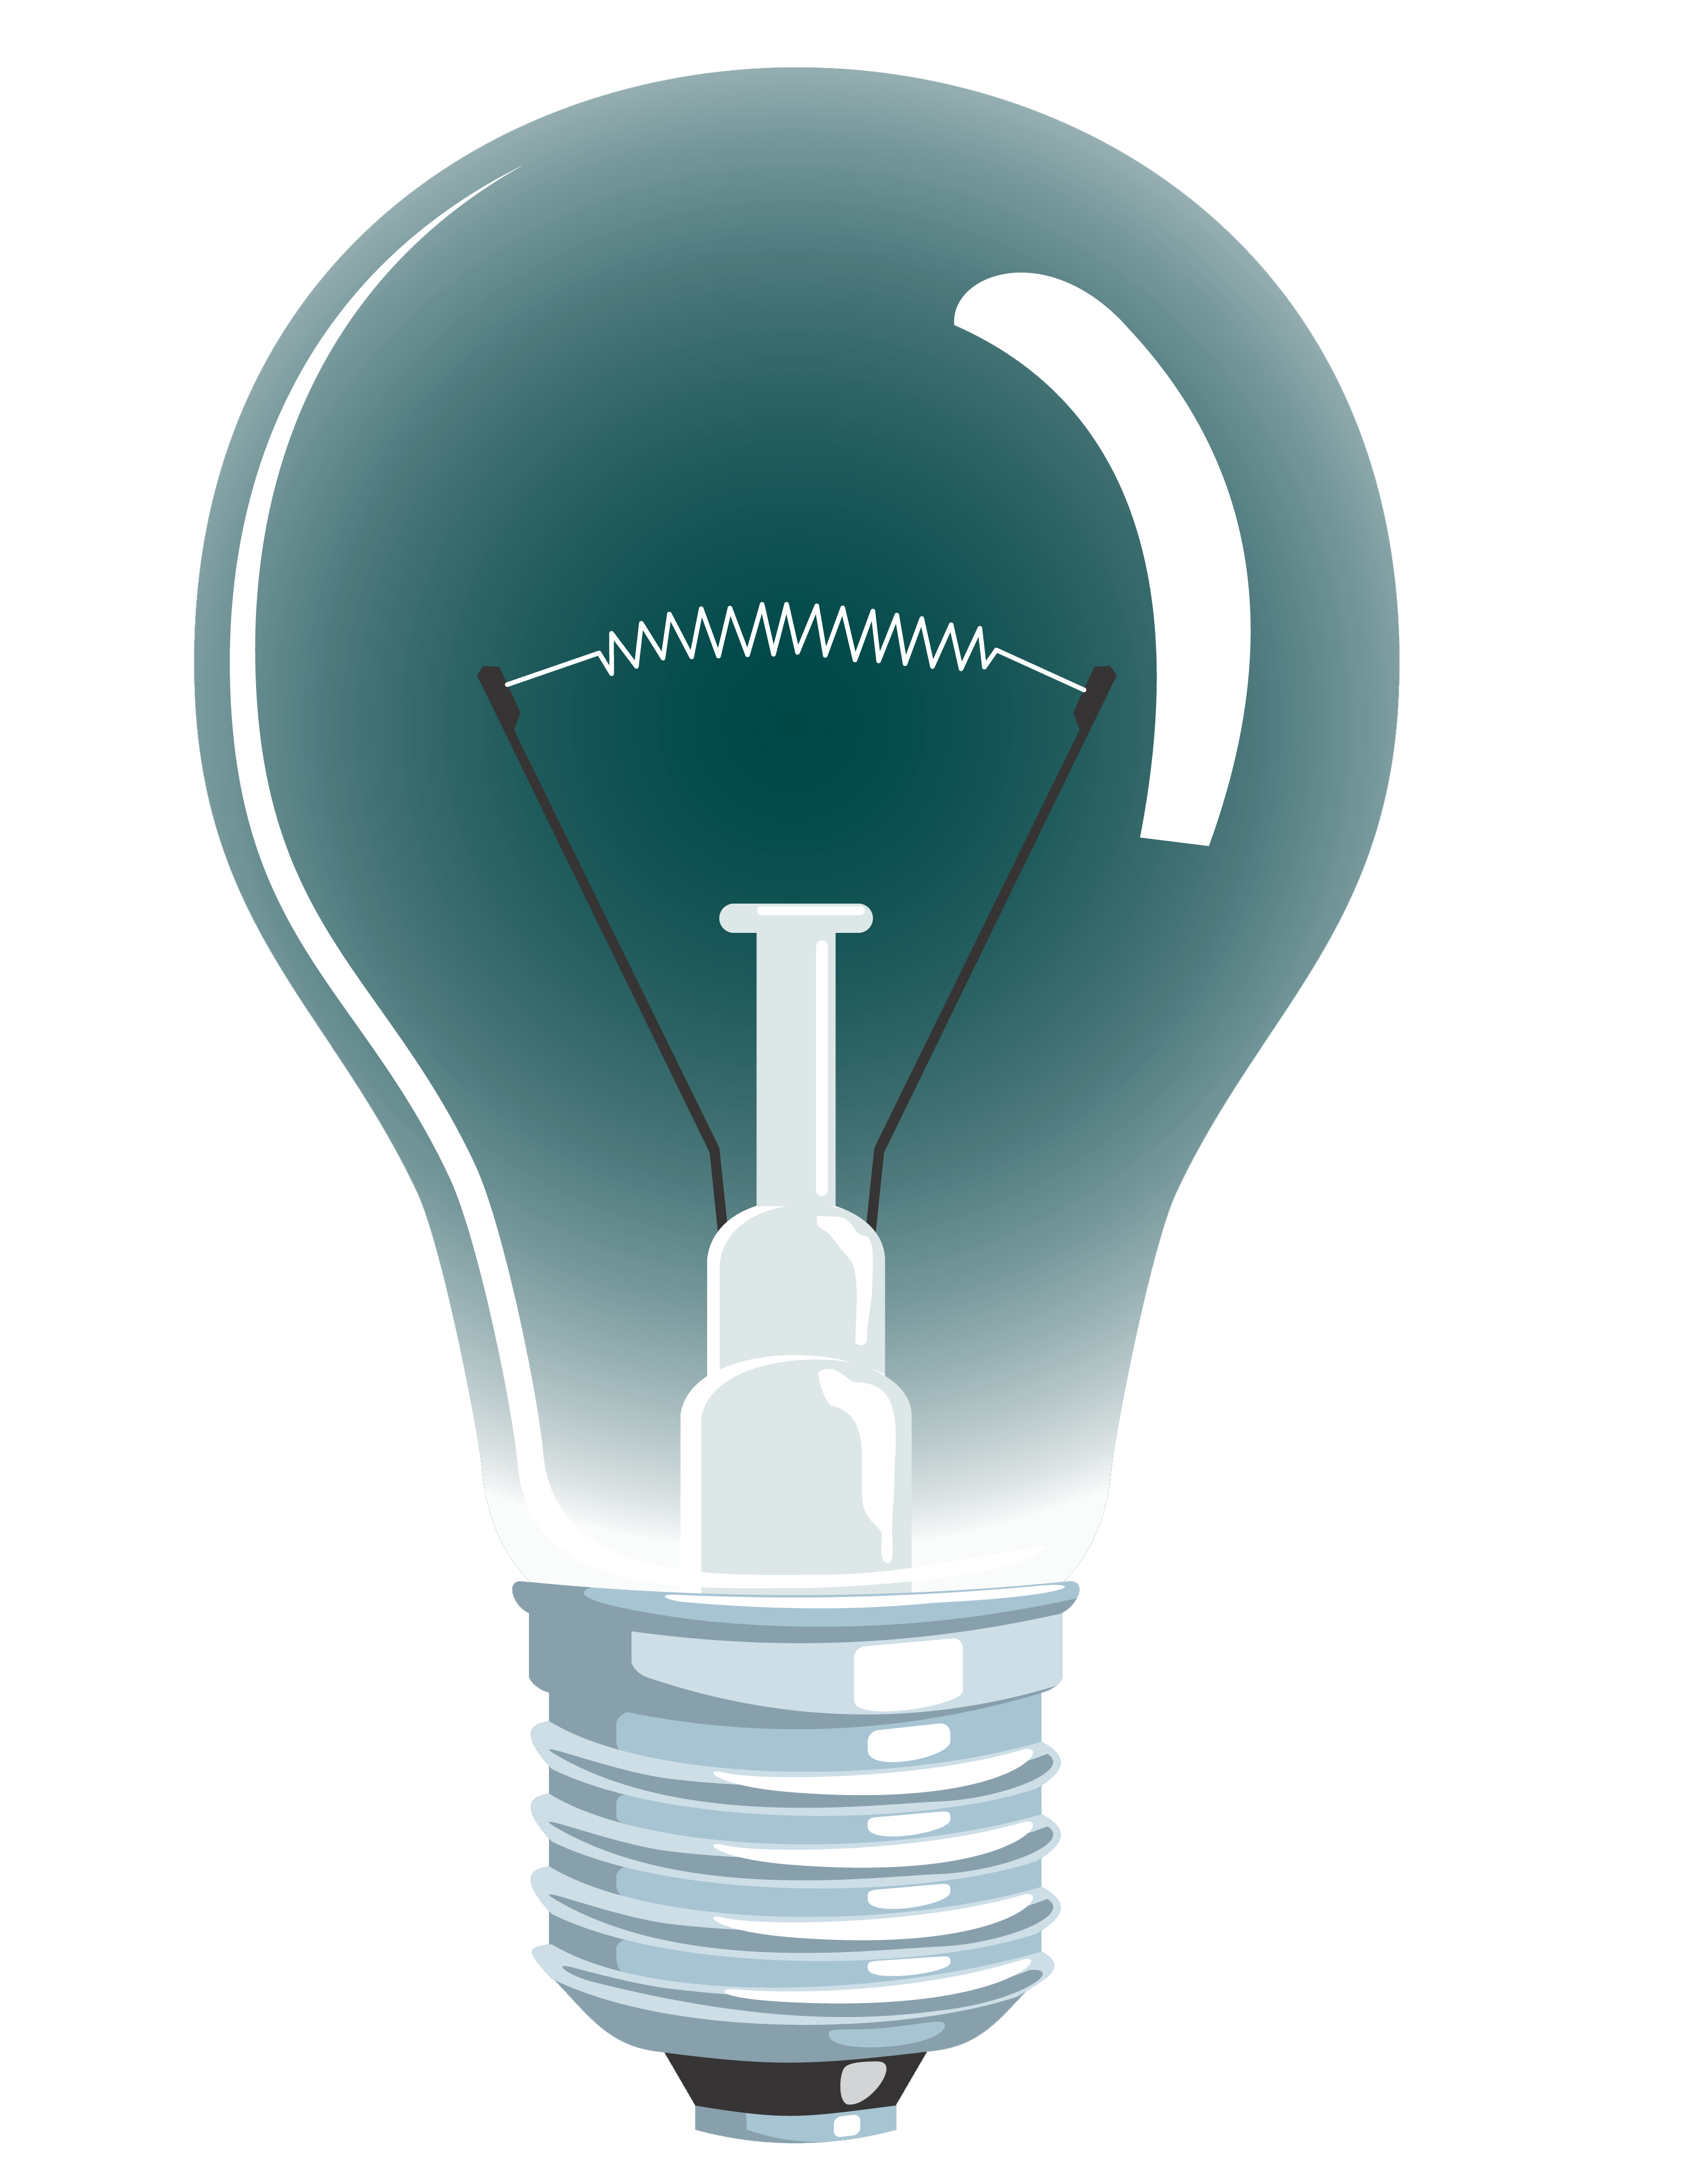 Download this high resolution Bulb PNG Image Without Background - Bulb HD PNG